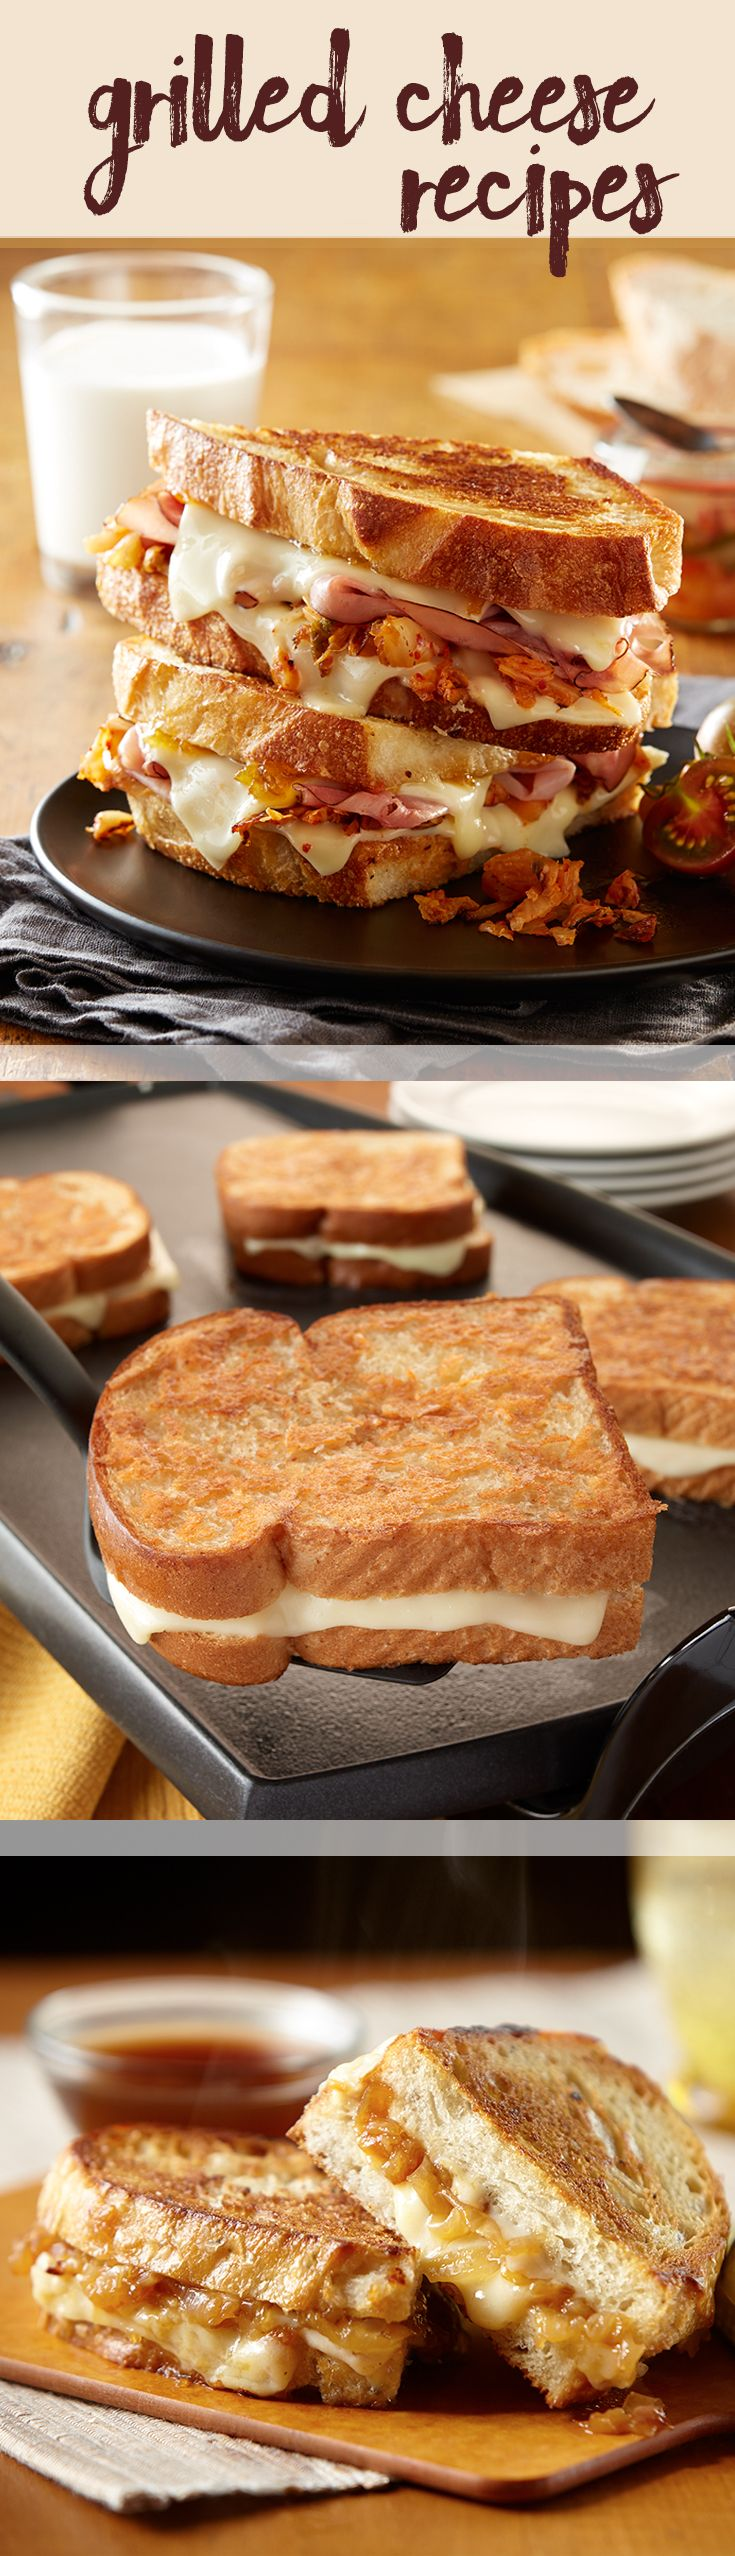 The best Grilled Cheese collection. From classic to creative there's a sandwich for everyone!